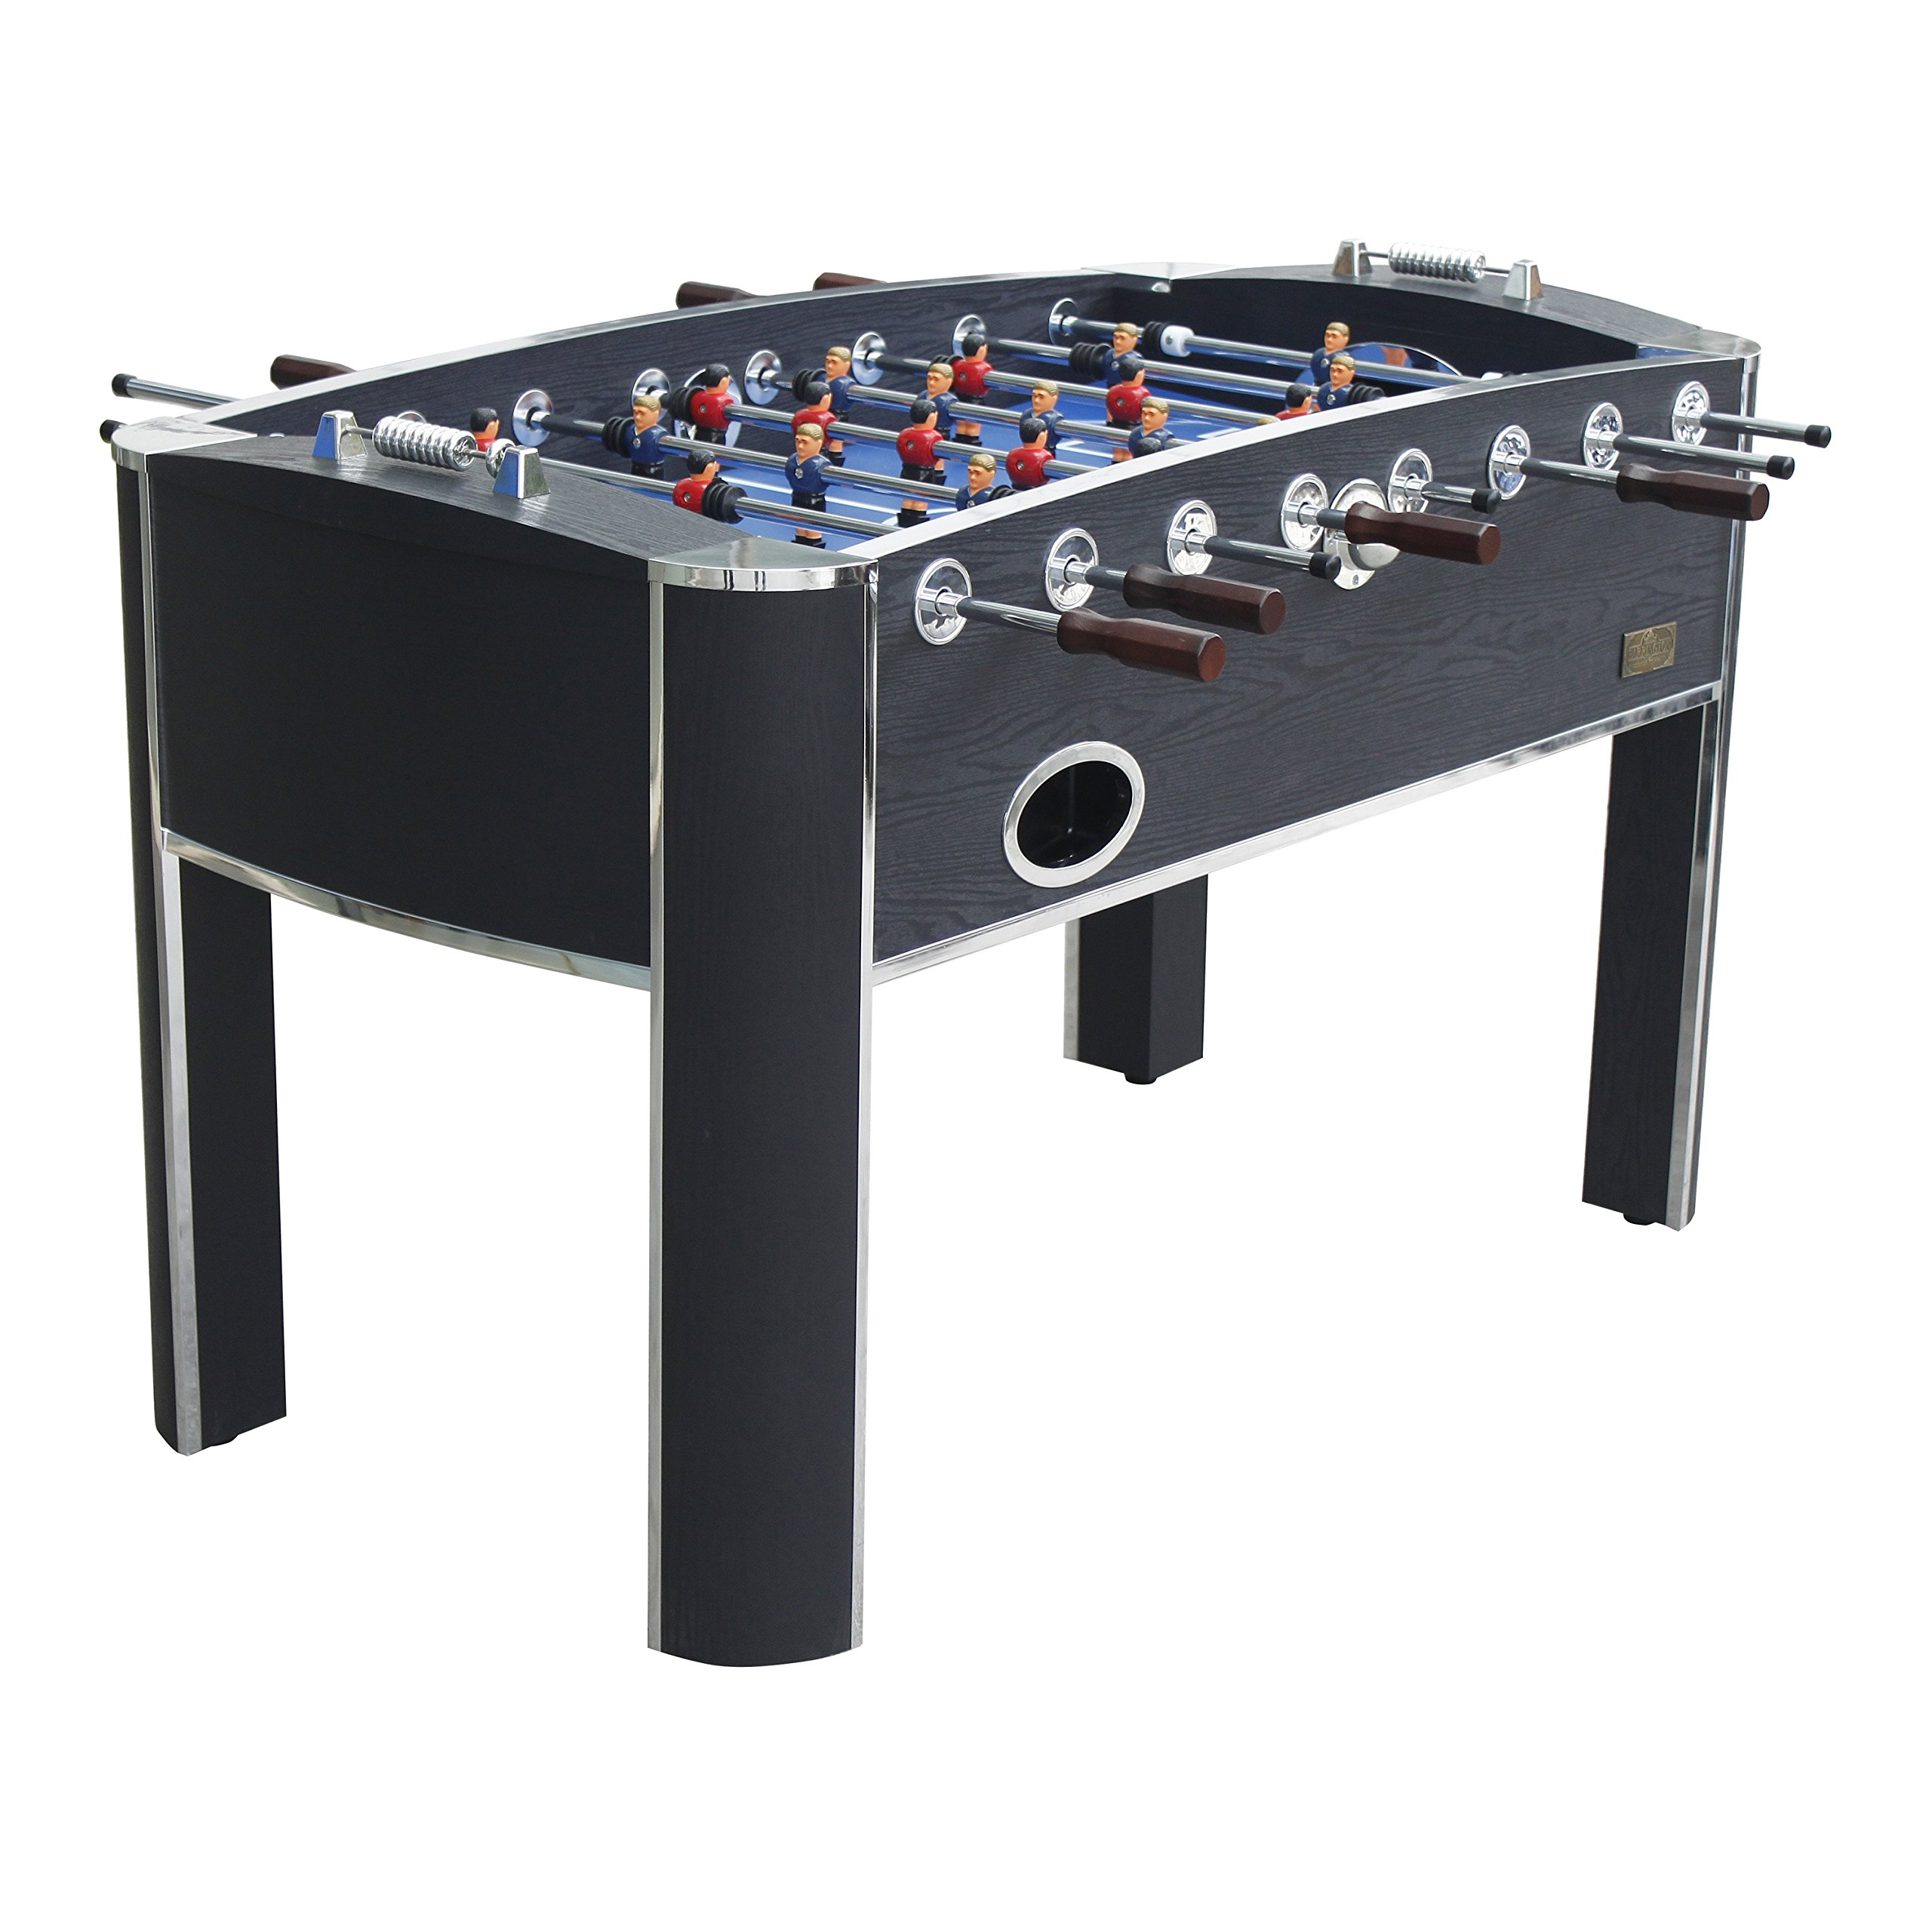 MD Sports Barrington 58'' Wooden Home Gameroom Foosball Table with Accessories